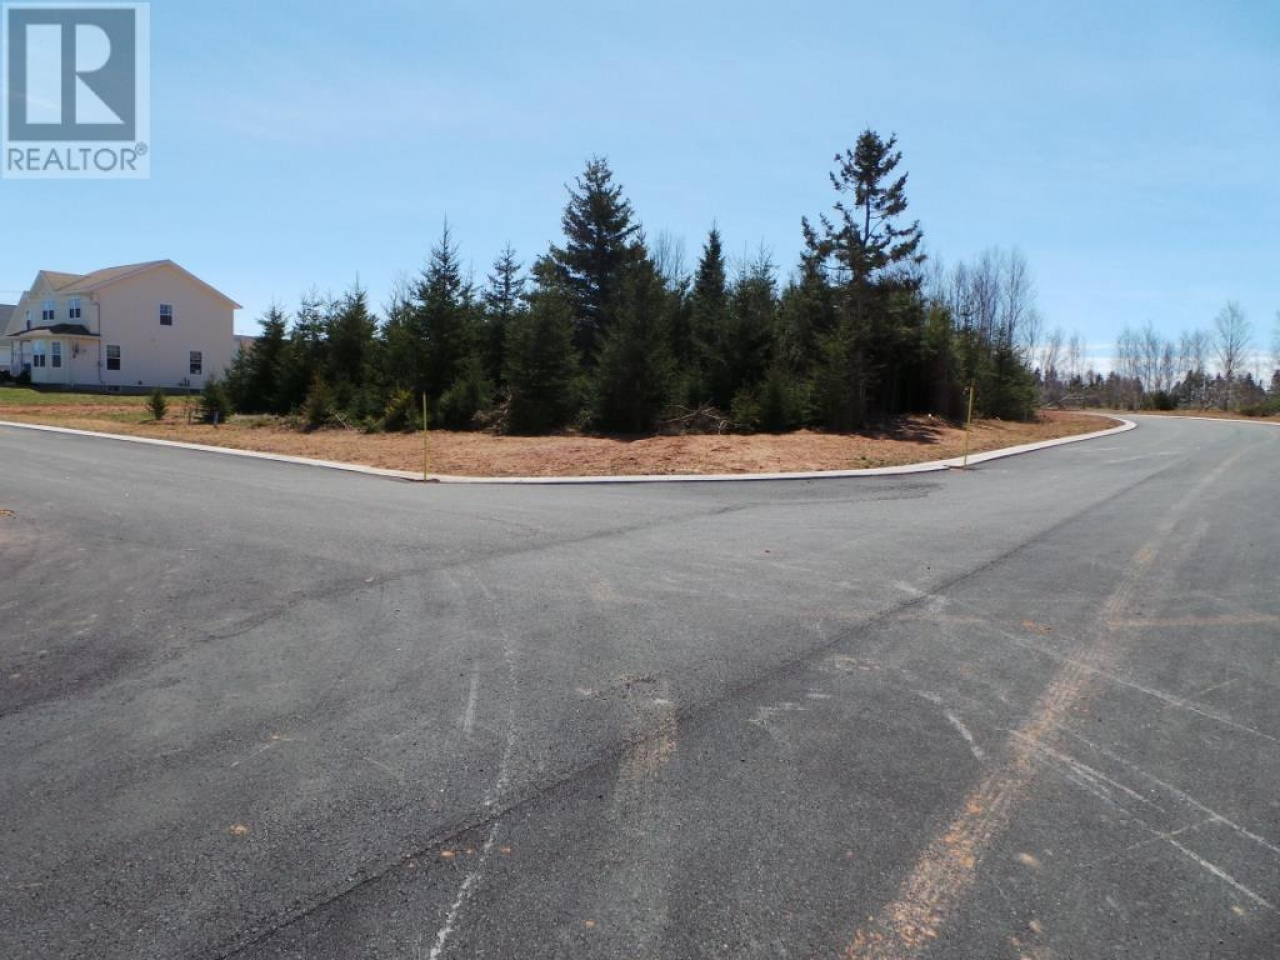 Lot 20-7 Waterview HeightsLot 20-7 Waterview Heights, Summerside, Prince Edward Island C1N6H5, ,Vacant Land,For Sale,Lot 20-7 Waterview Heights,202111411